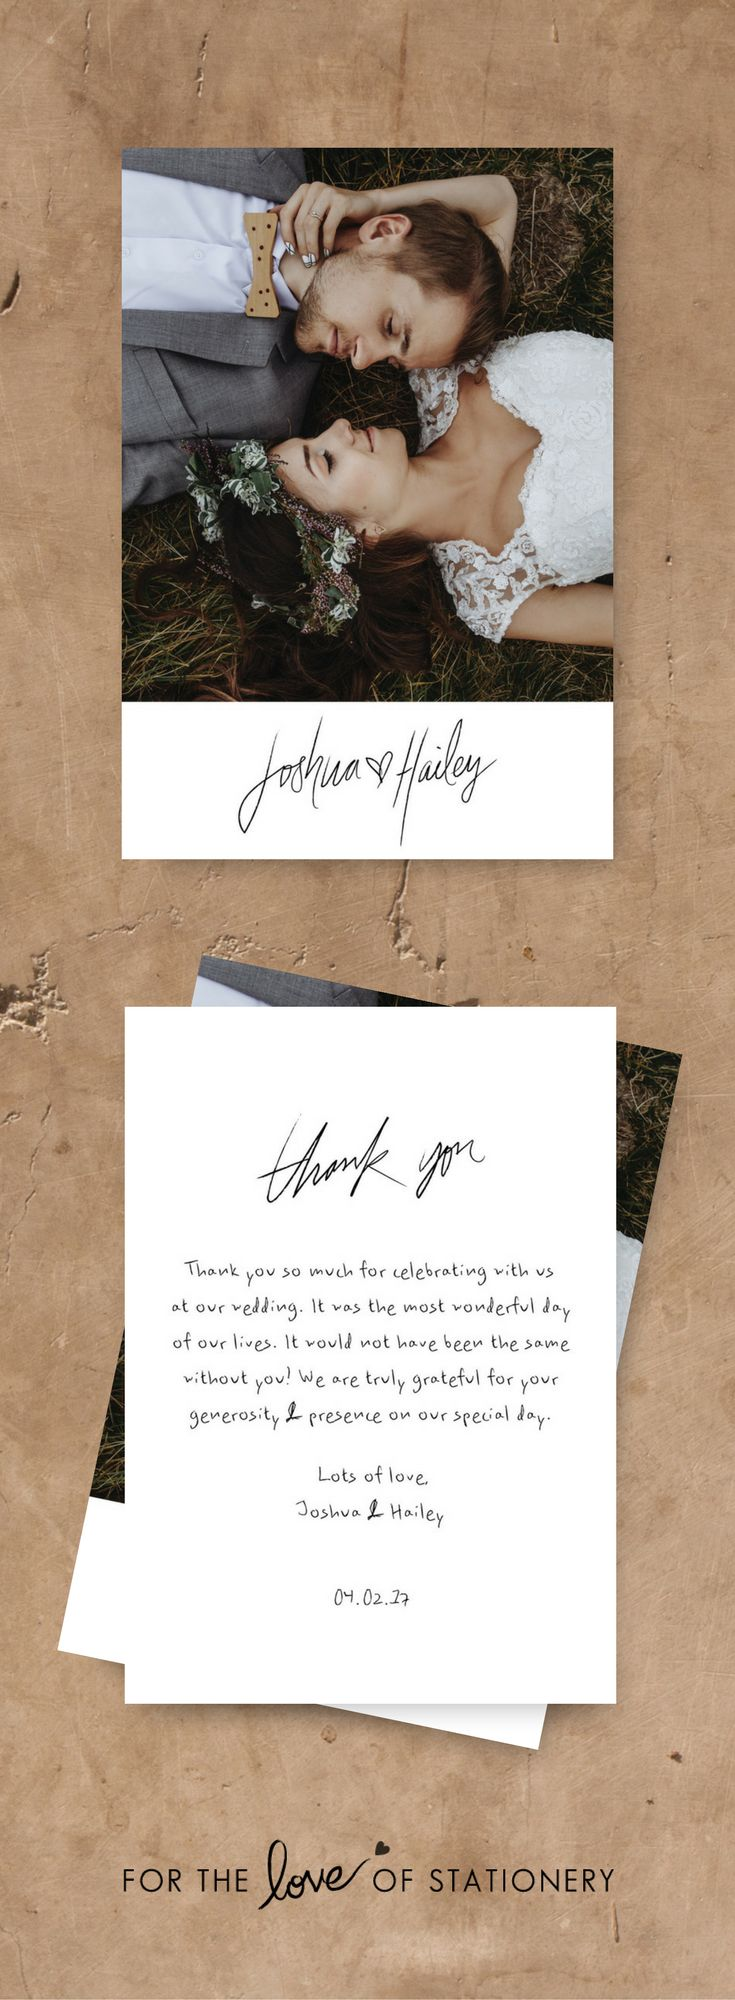 free online printable wedding thank you cards%0A Rustic Wedding Thank You Cards Printable Photo Card Thank You Postcard